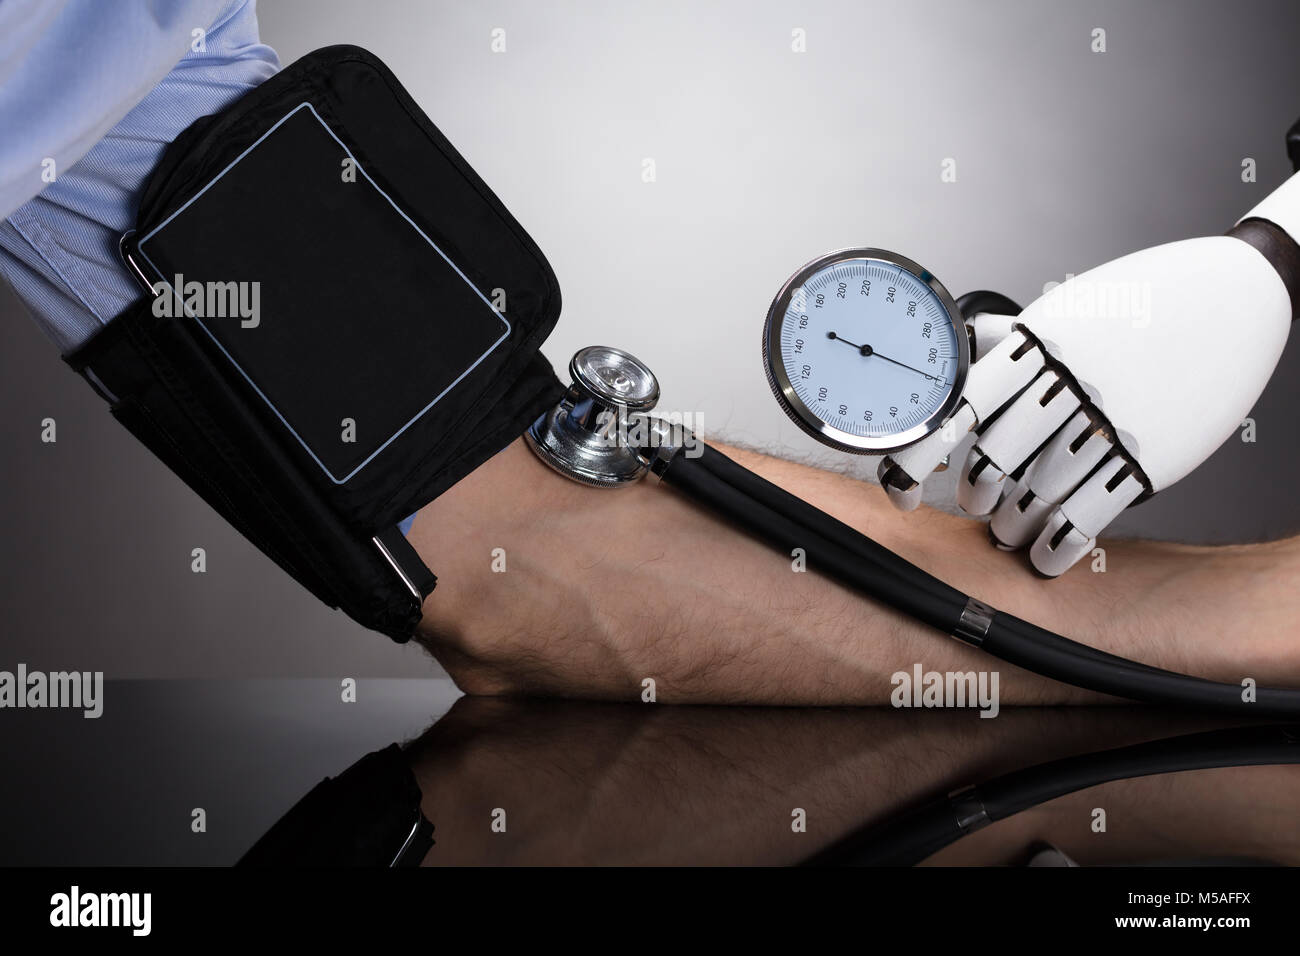 Robot's Hand Checking Person's Blood Pressure On Grey Background - Stock Image